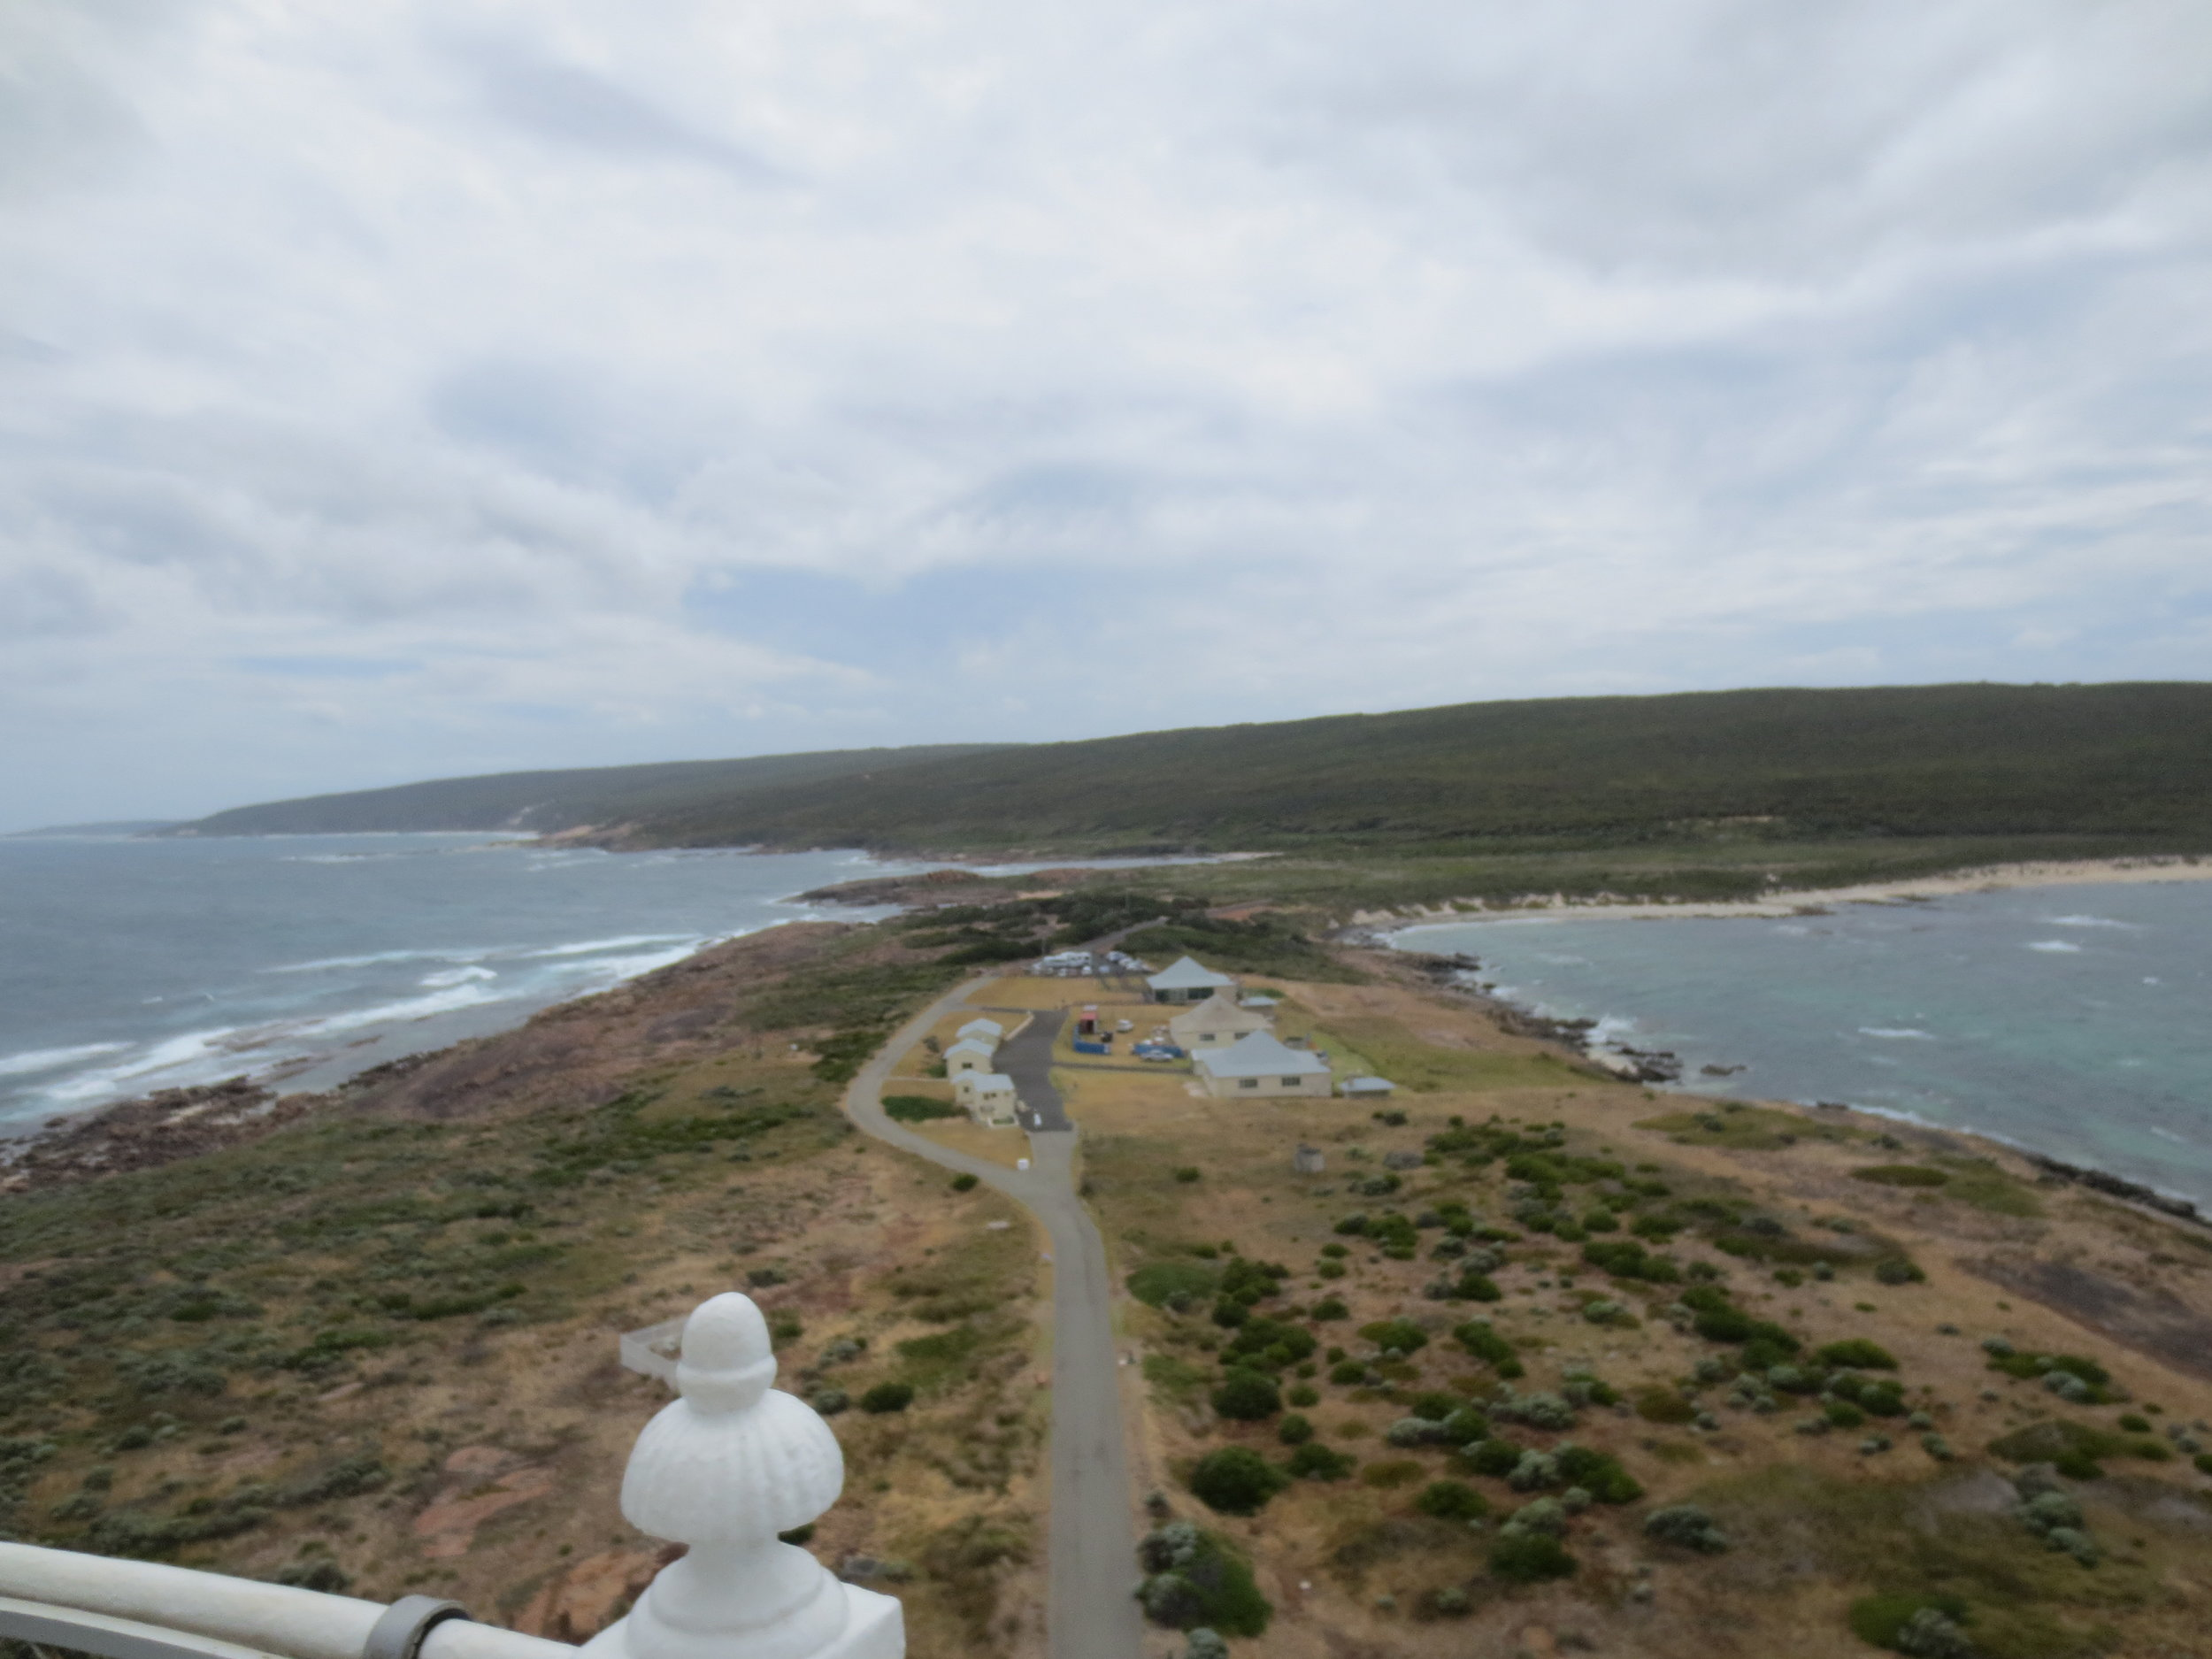 Indian Ocean on the left, Southern Ocean on the right